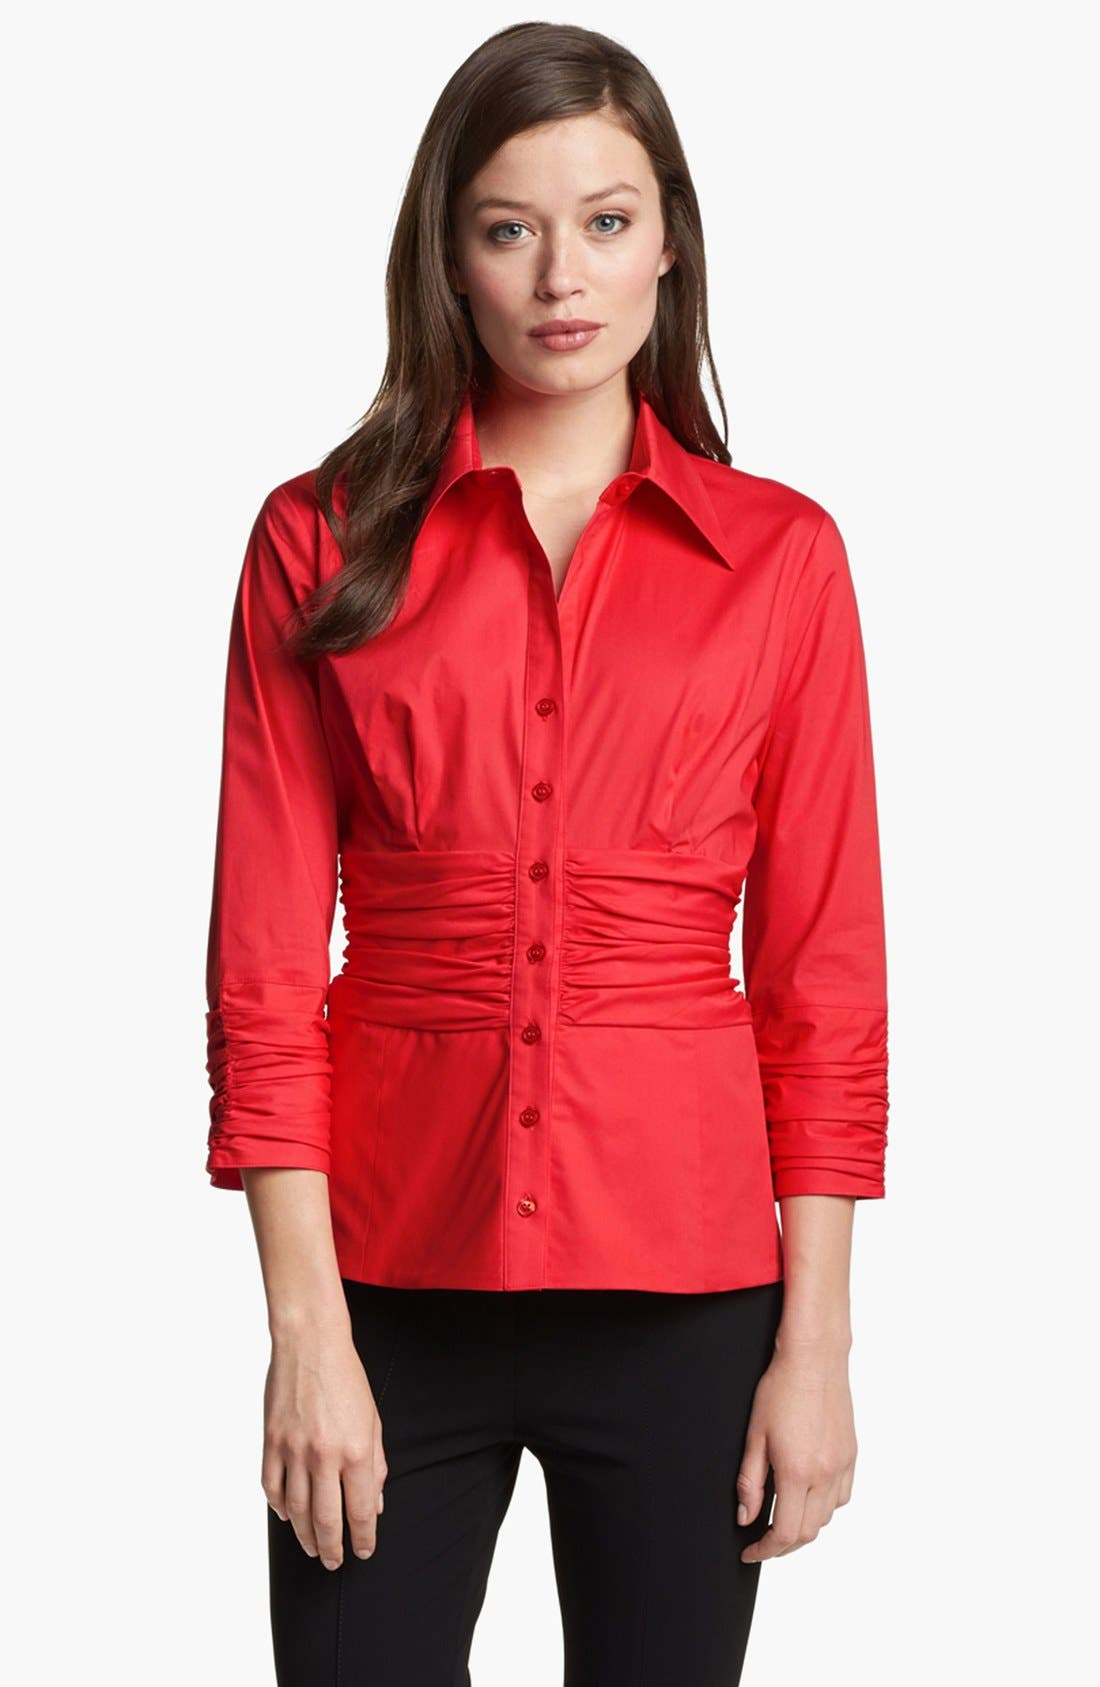 Alternate Image 1 Selected - Finley 'Marlon' Ruched Blouse